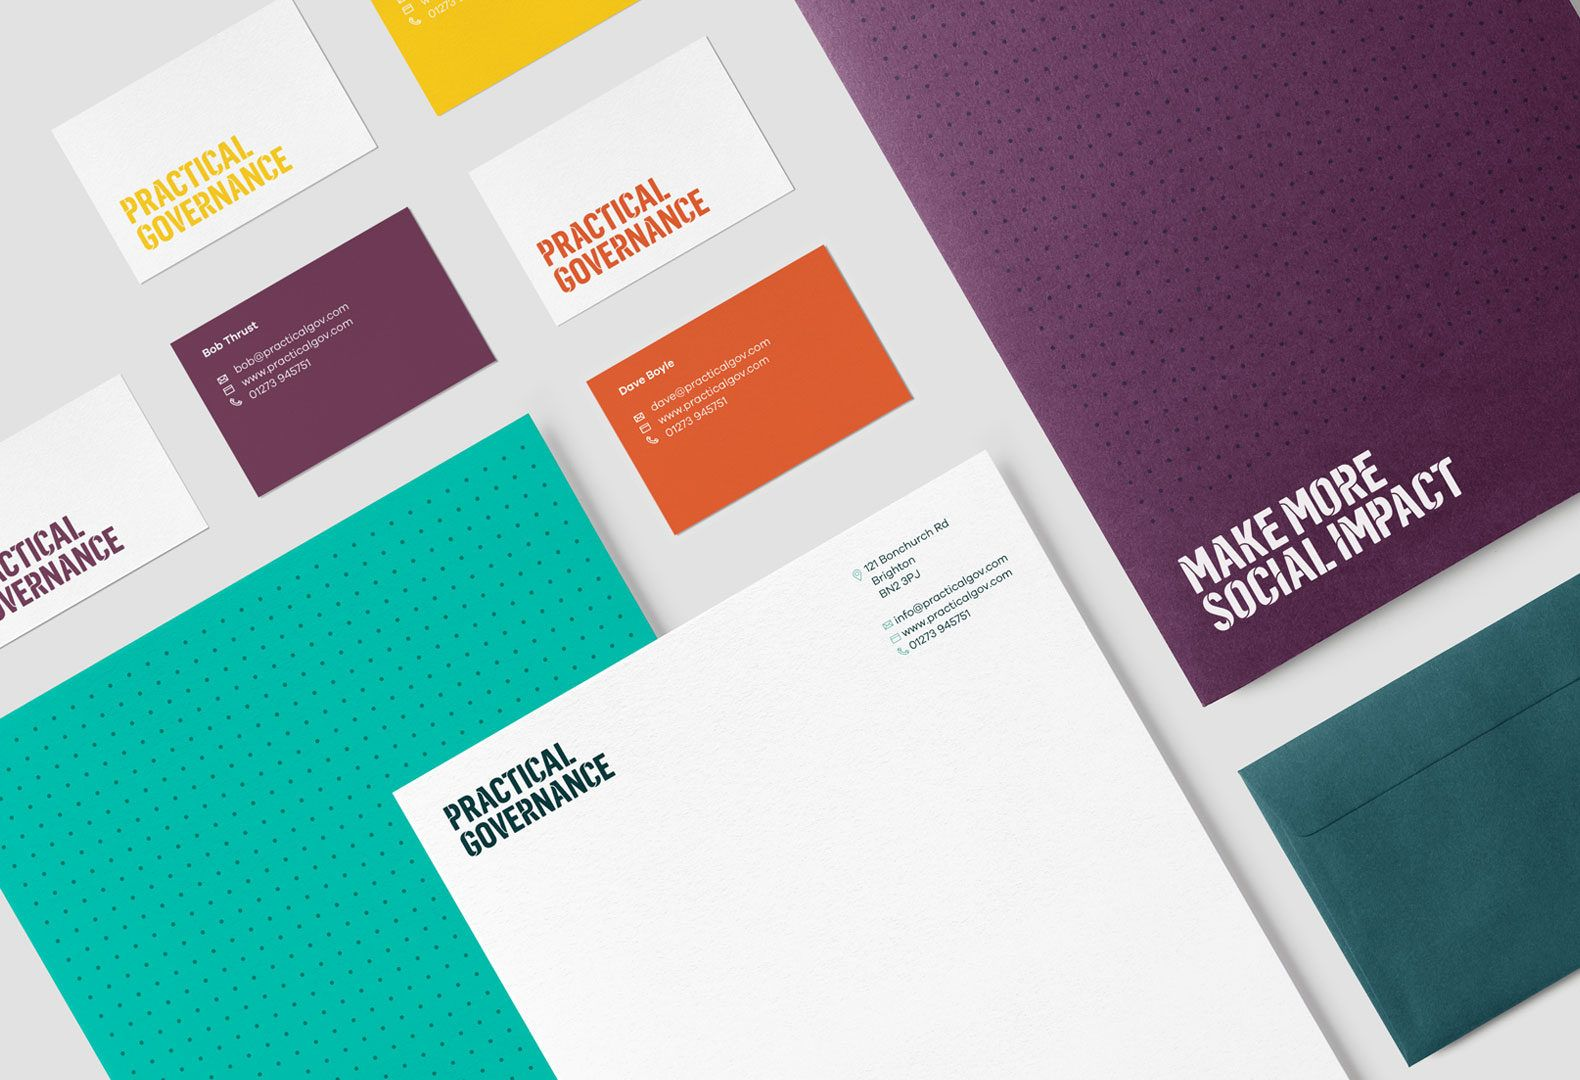 Practical governance brand applied to their stationery letterheads practical governance brand applied to their stationery letterheads business cards compliment slips reheart Image collections